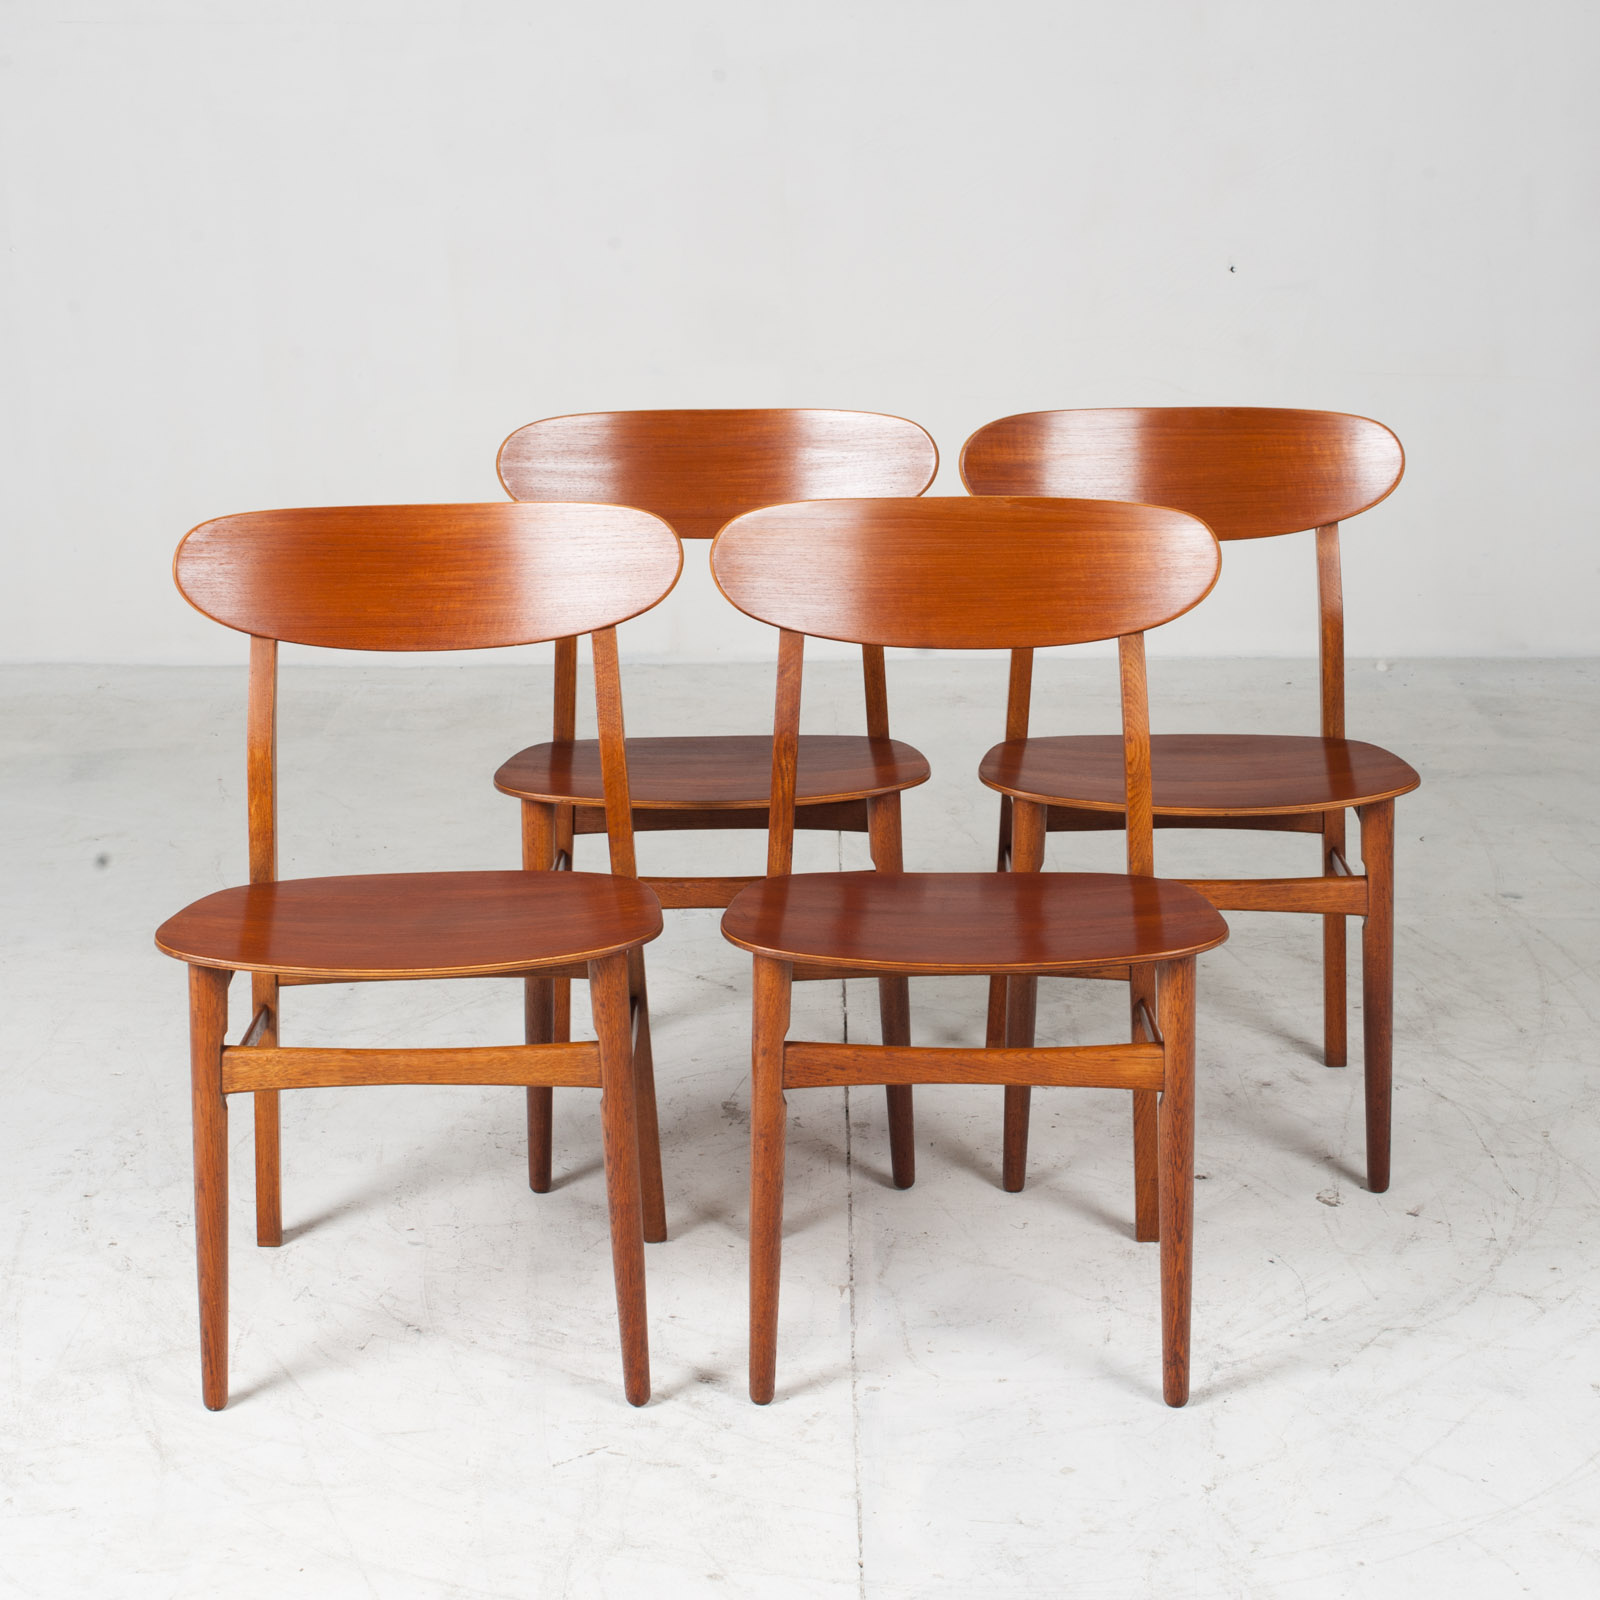 Set Of 4 Round Back Dining Chairs In Teak 1960s Denmark19